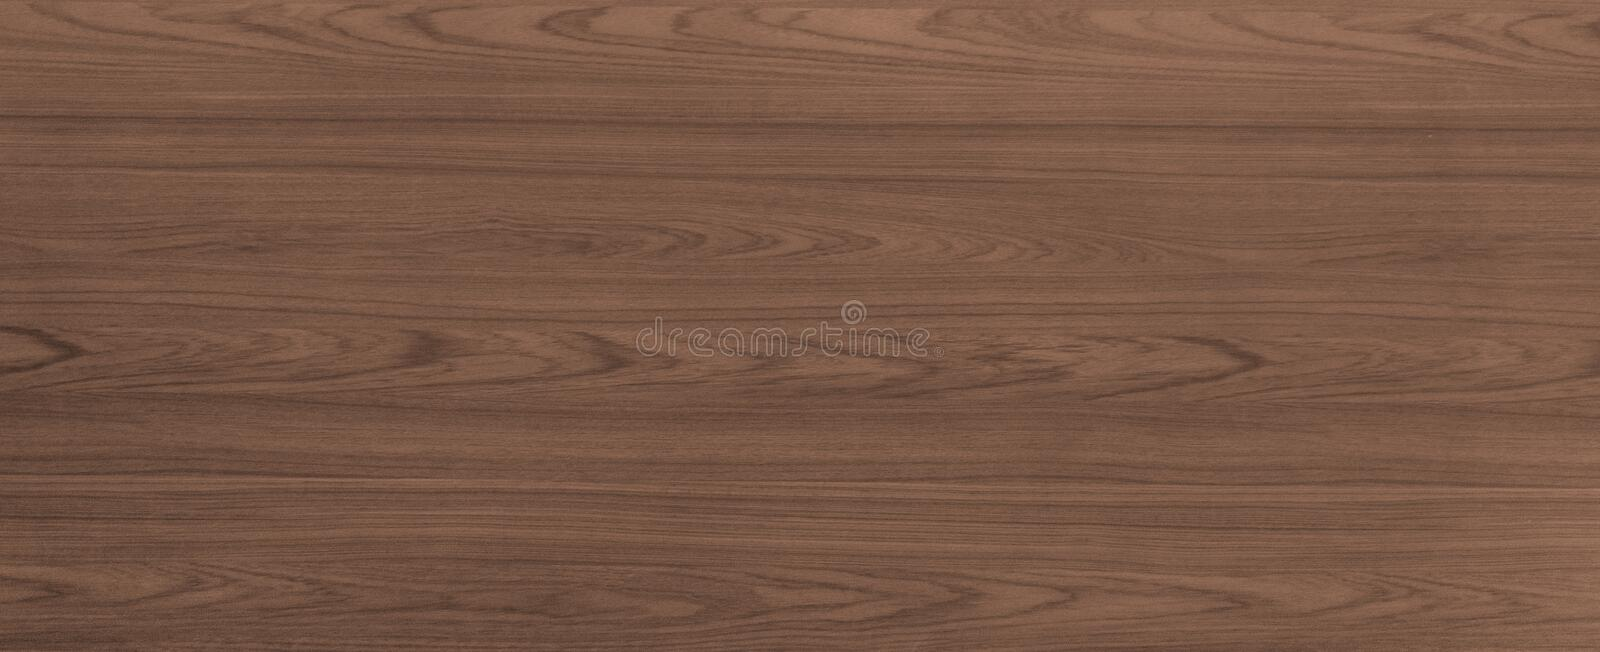 Natural wood wall or flooring pattern surface texture. Close-up of interior material for design decoration background.  stock photo